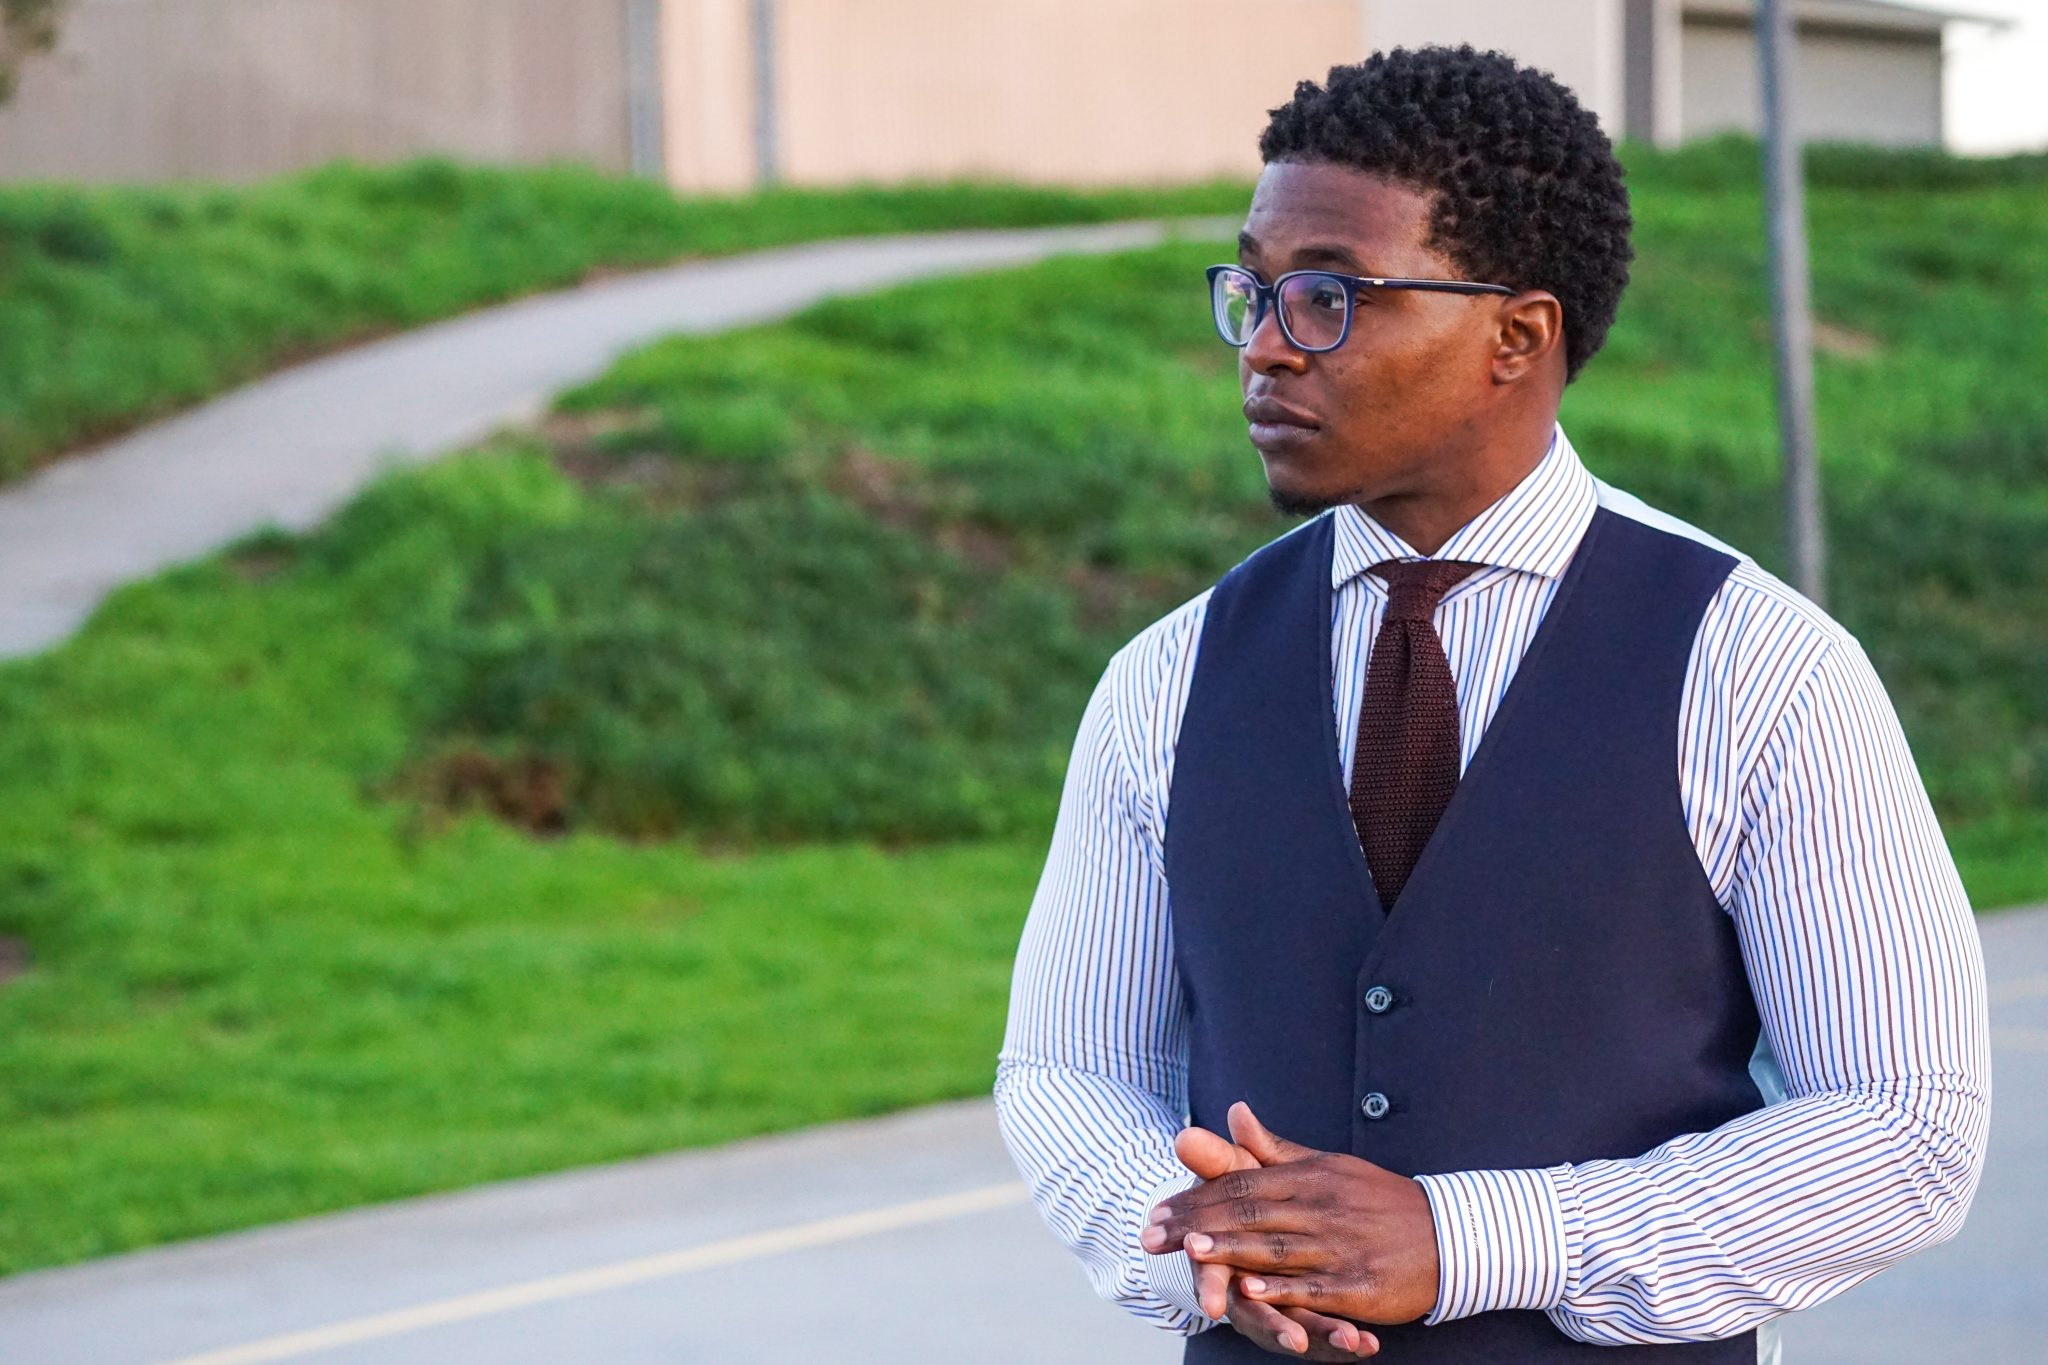 dapper-advisor-invest in yourself-black-man-wearing-navy-waistcoat-brown-silk-knit-tie-custom-itailor-stripe-shirt-men-4